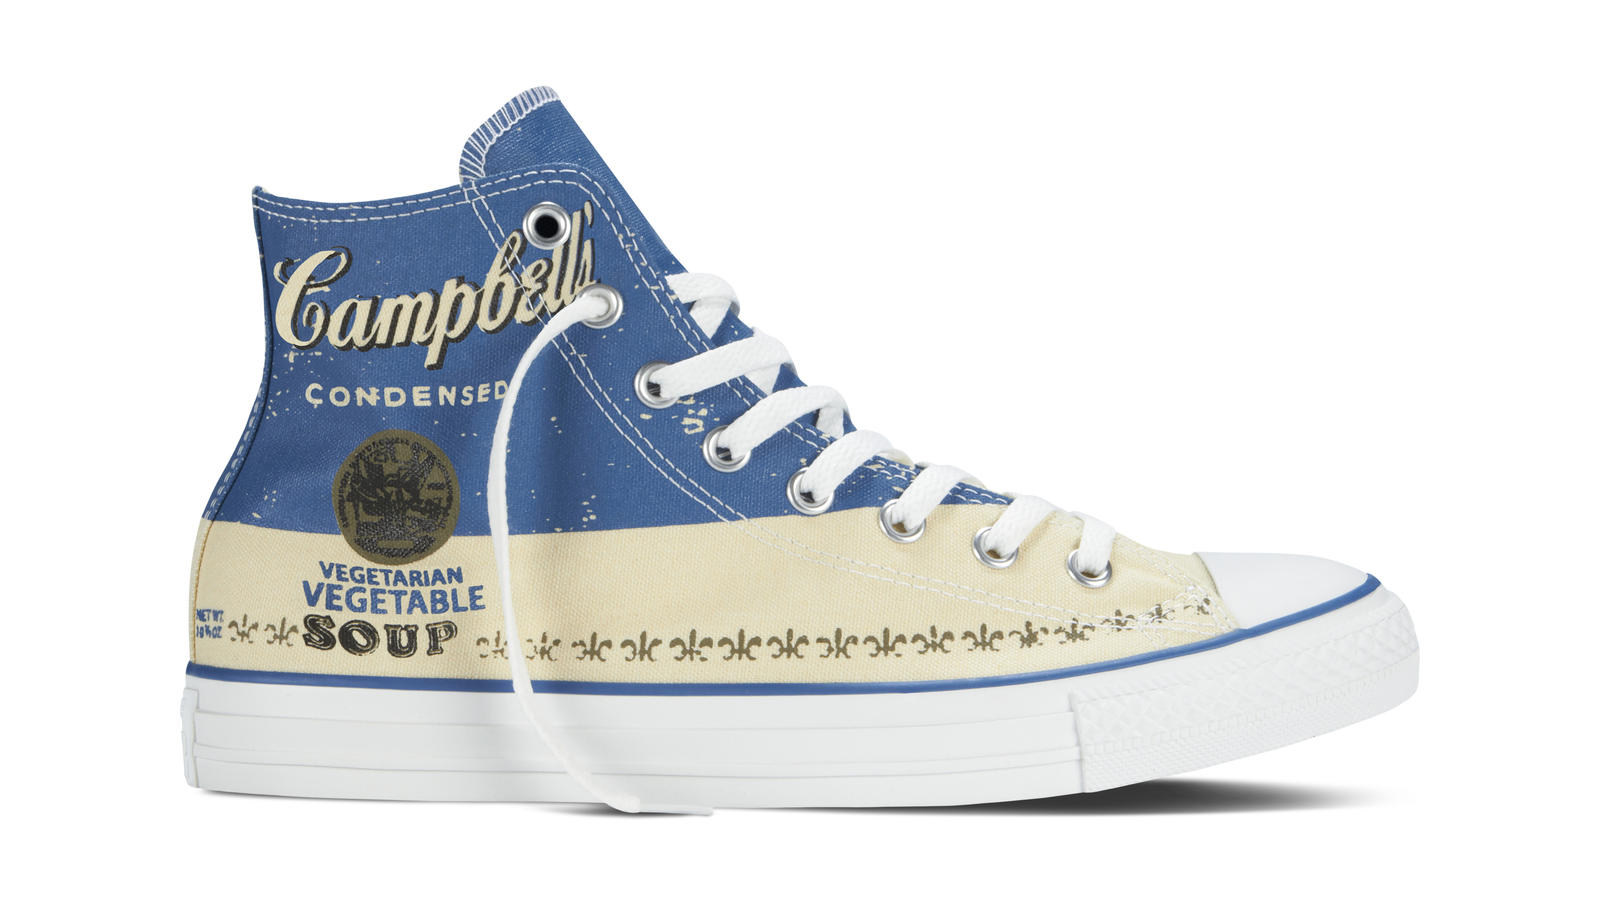 b67fa4619246 Converse Celebrates the Creative Spirit of Andy Warhol - Nike News